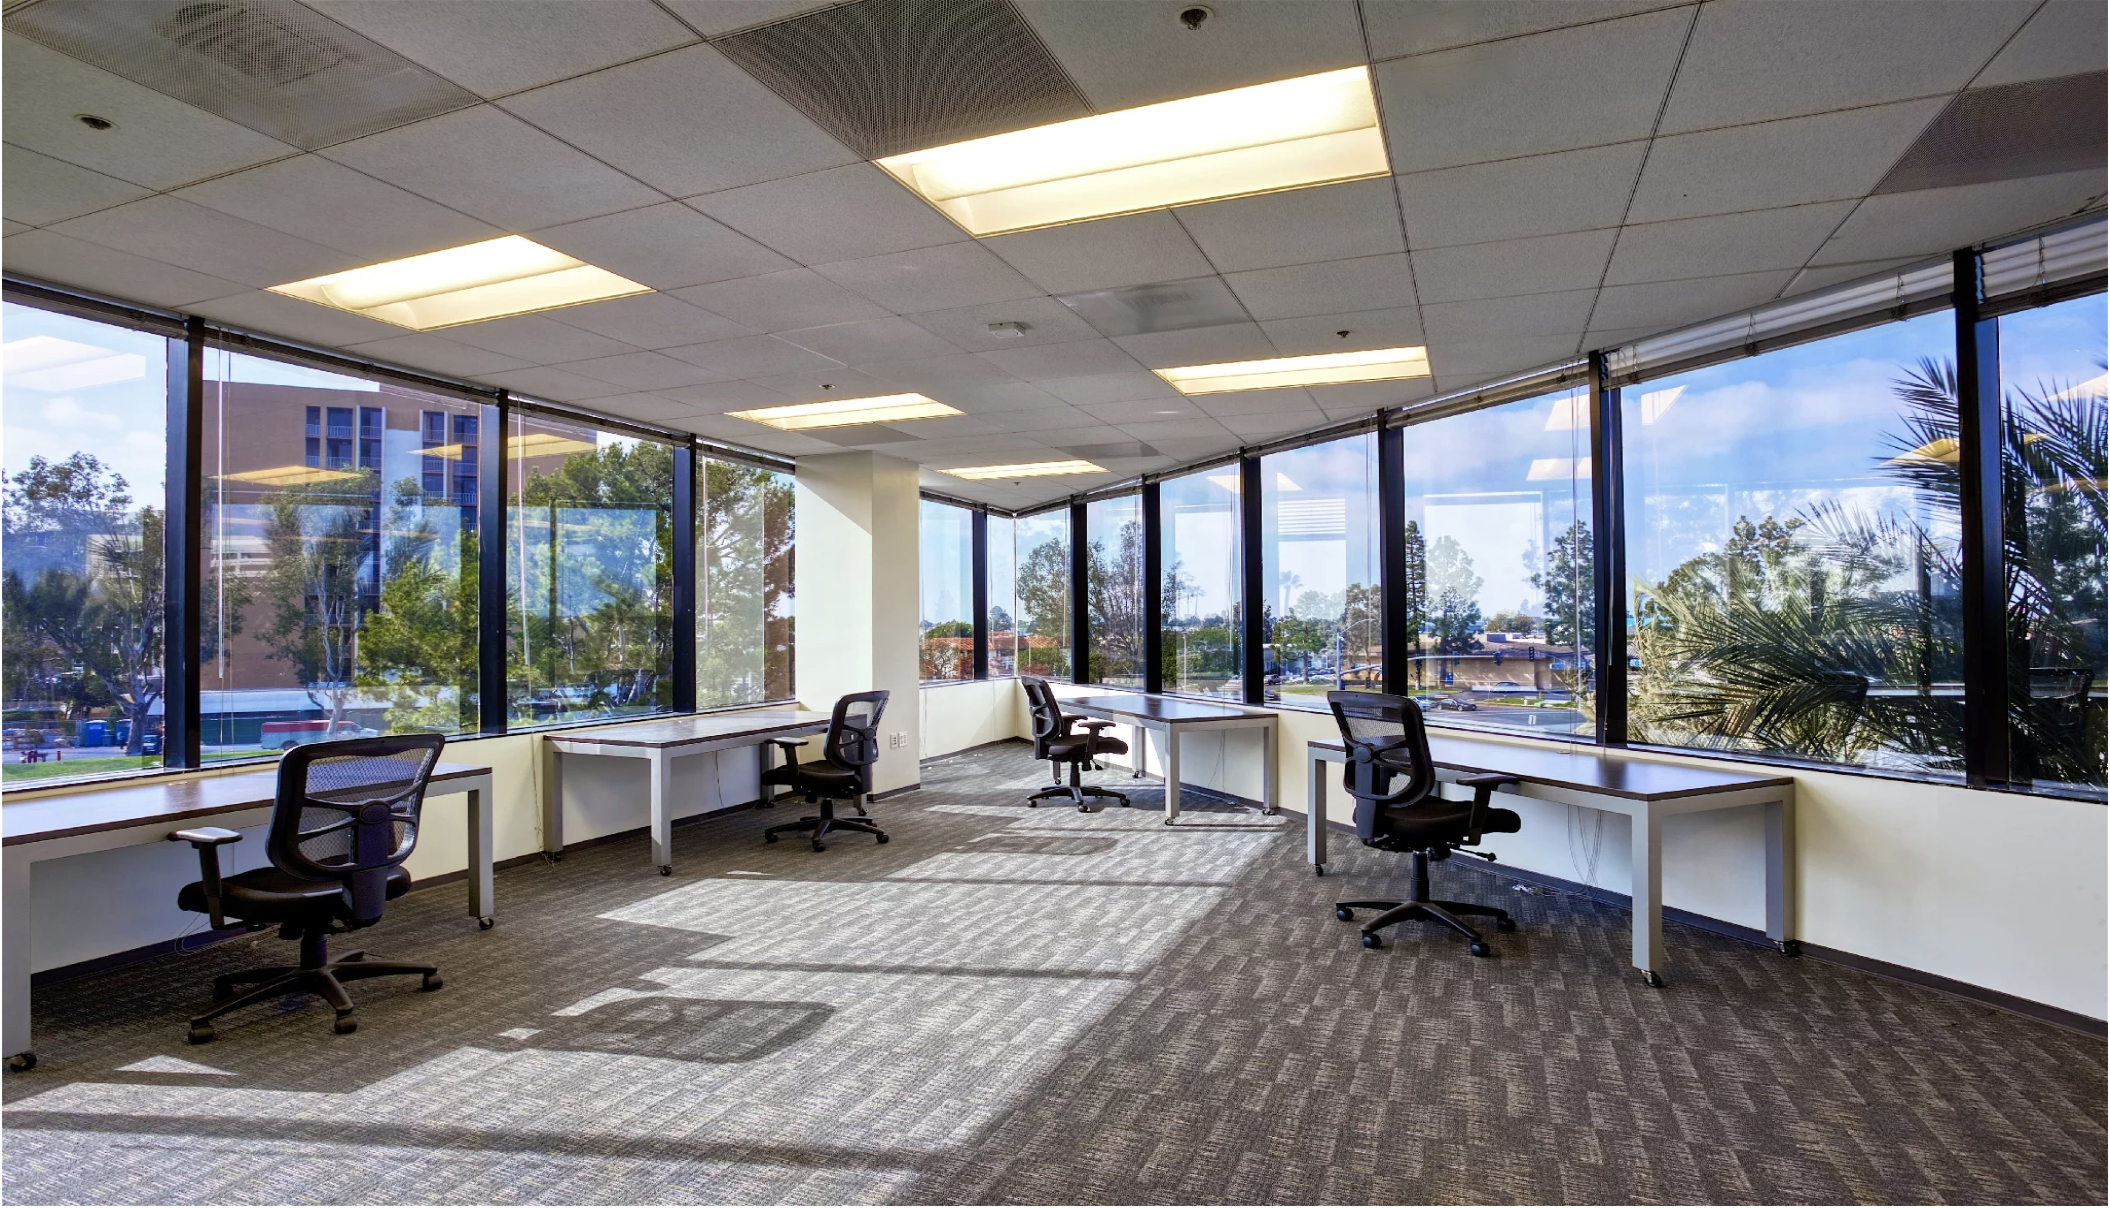 co-working_executive_office_Irvine_Newport_Beach_Shared_Workspace_Costa_Mesa_Suites_Creative_Coffee_Cool_Wifi_Orange_County_Lease_Networking_Event_Views_Airport_Meeting_Room_Conference_Virtual_Private